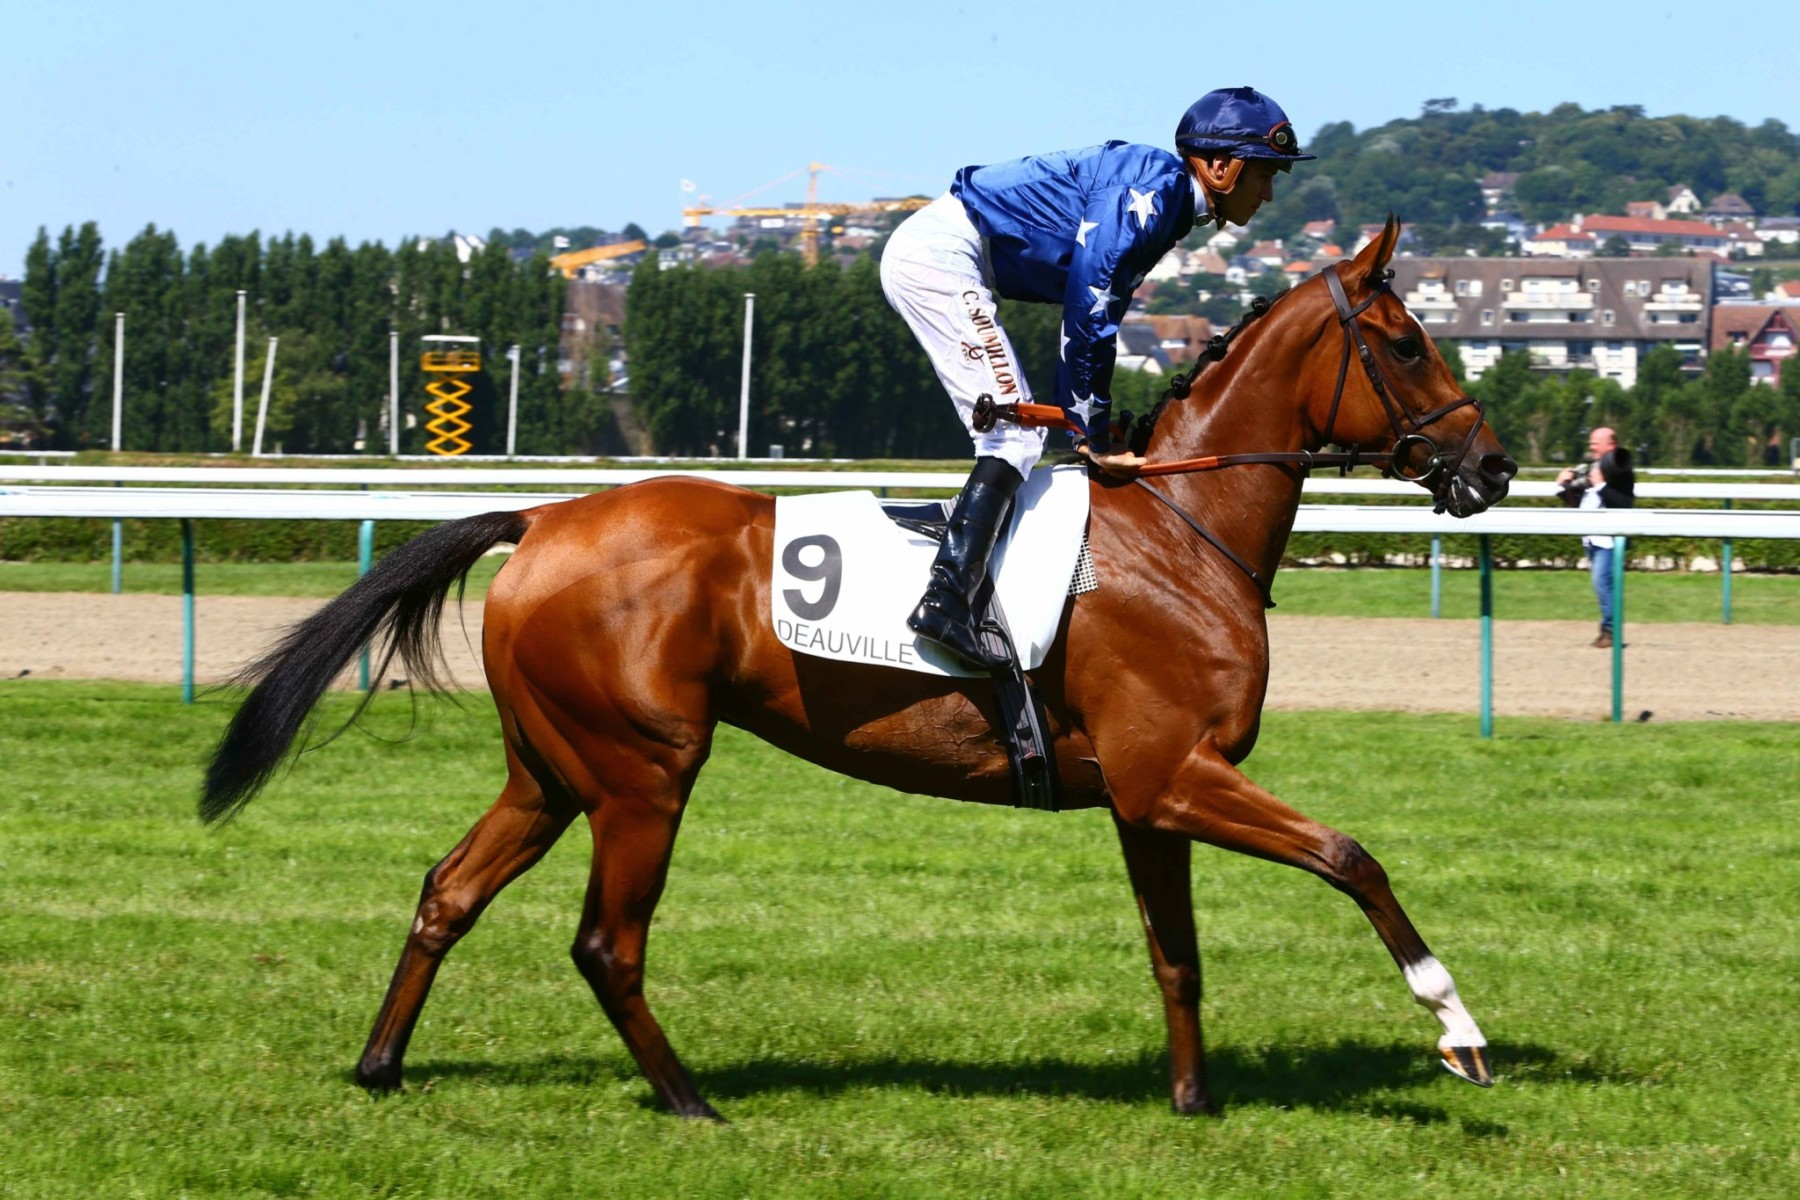 KINGDOM OF BAHRAIN SUN CHARIOT STAKES (GR1) - Les Siyouni françaises attaquent en force